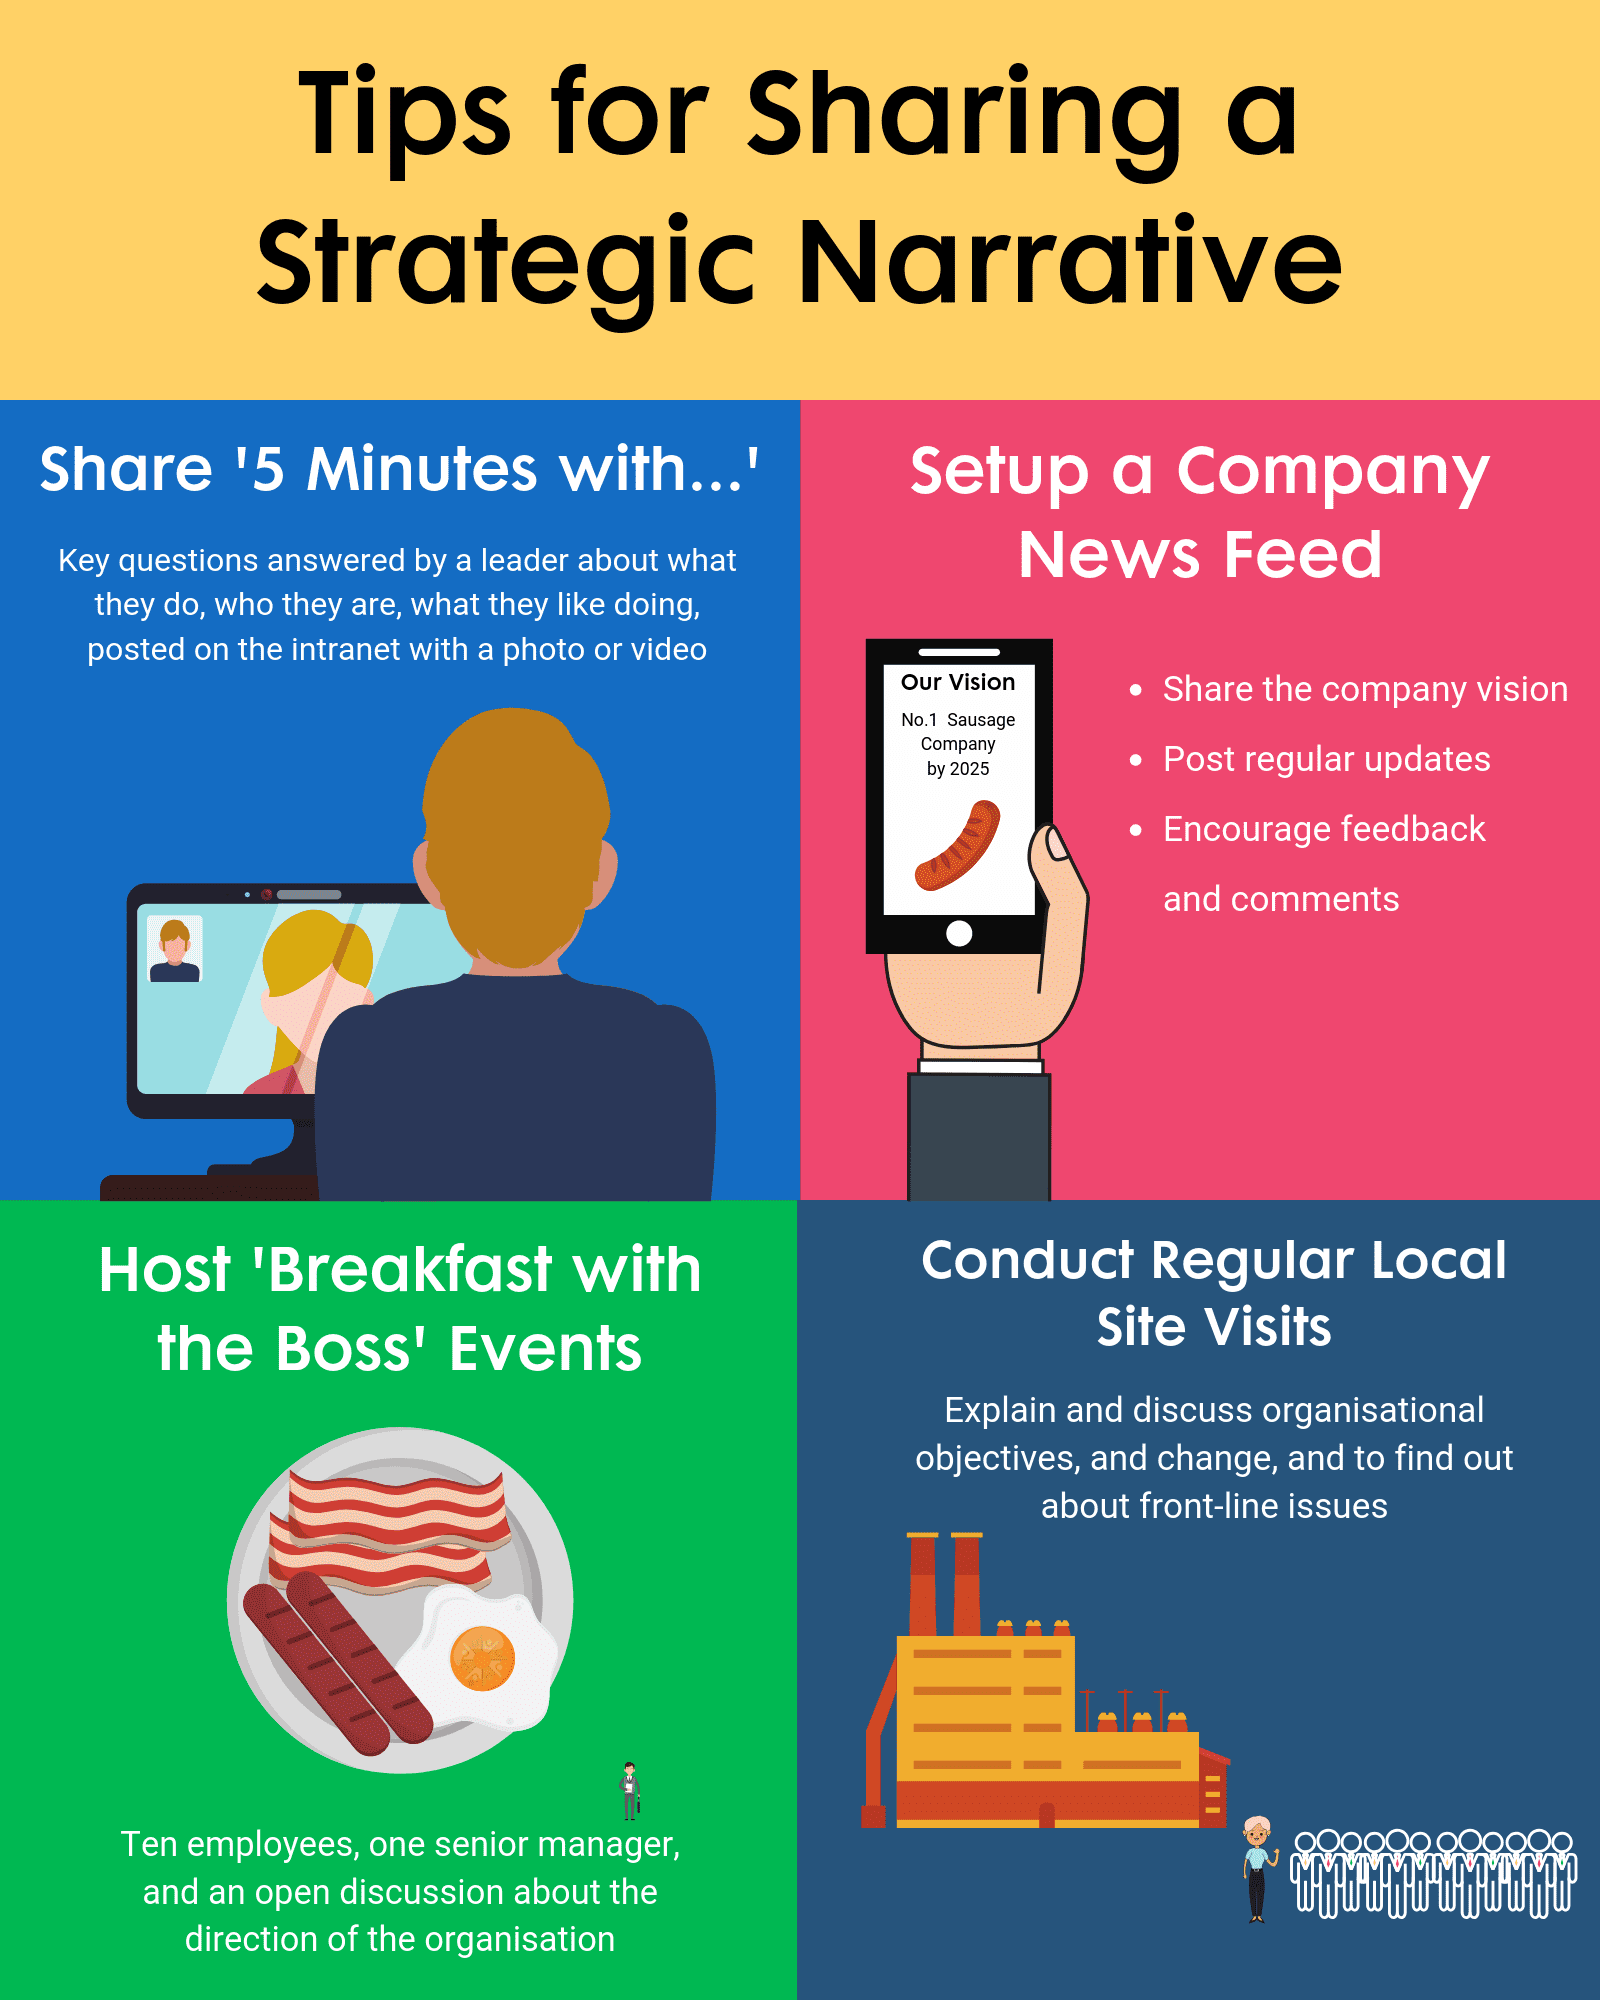 Tips for Sharing a Strategic Narrative for Better Employee Engagement